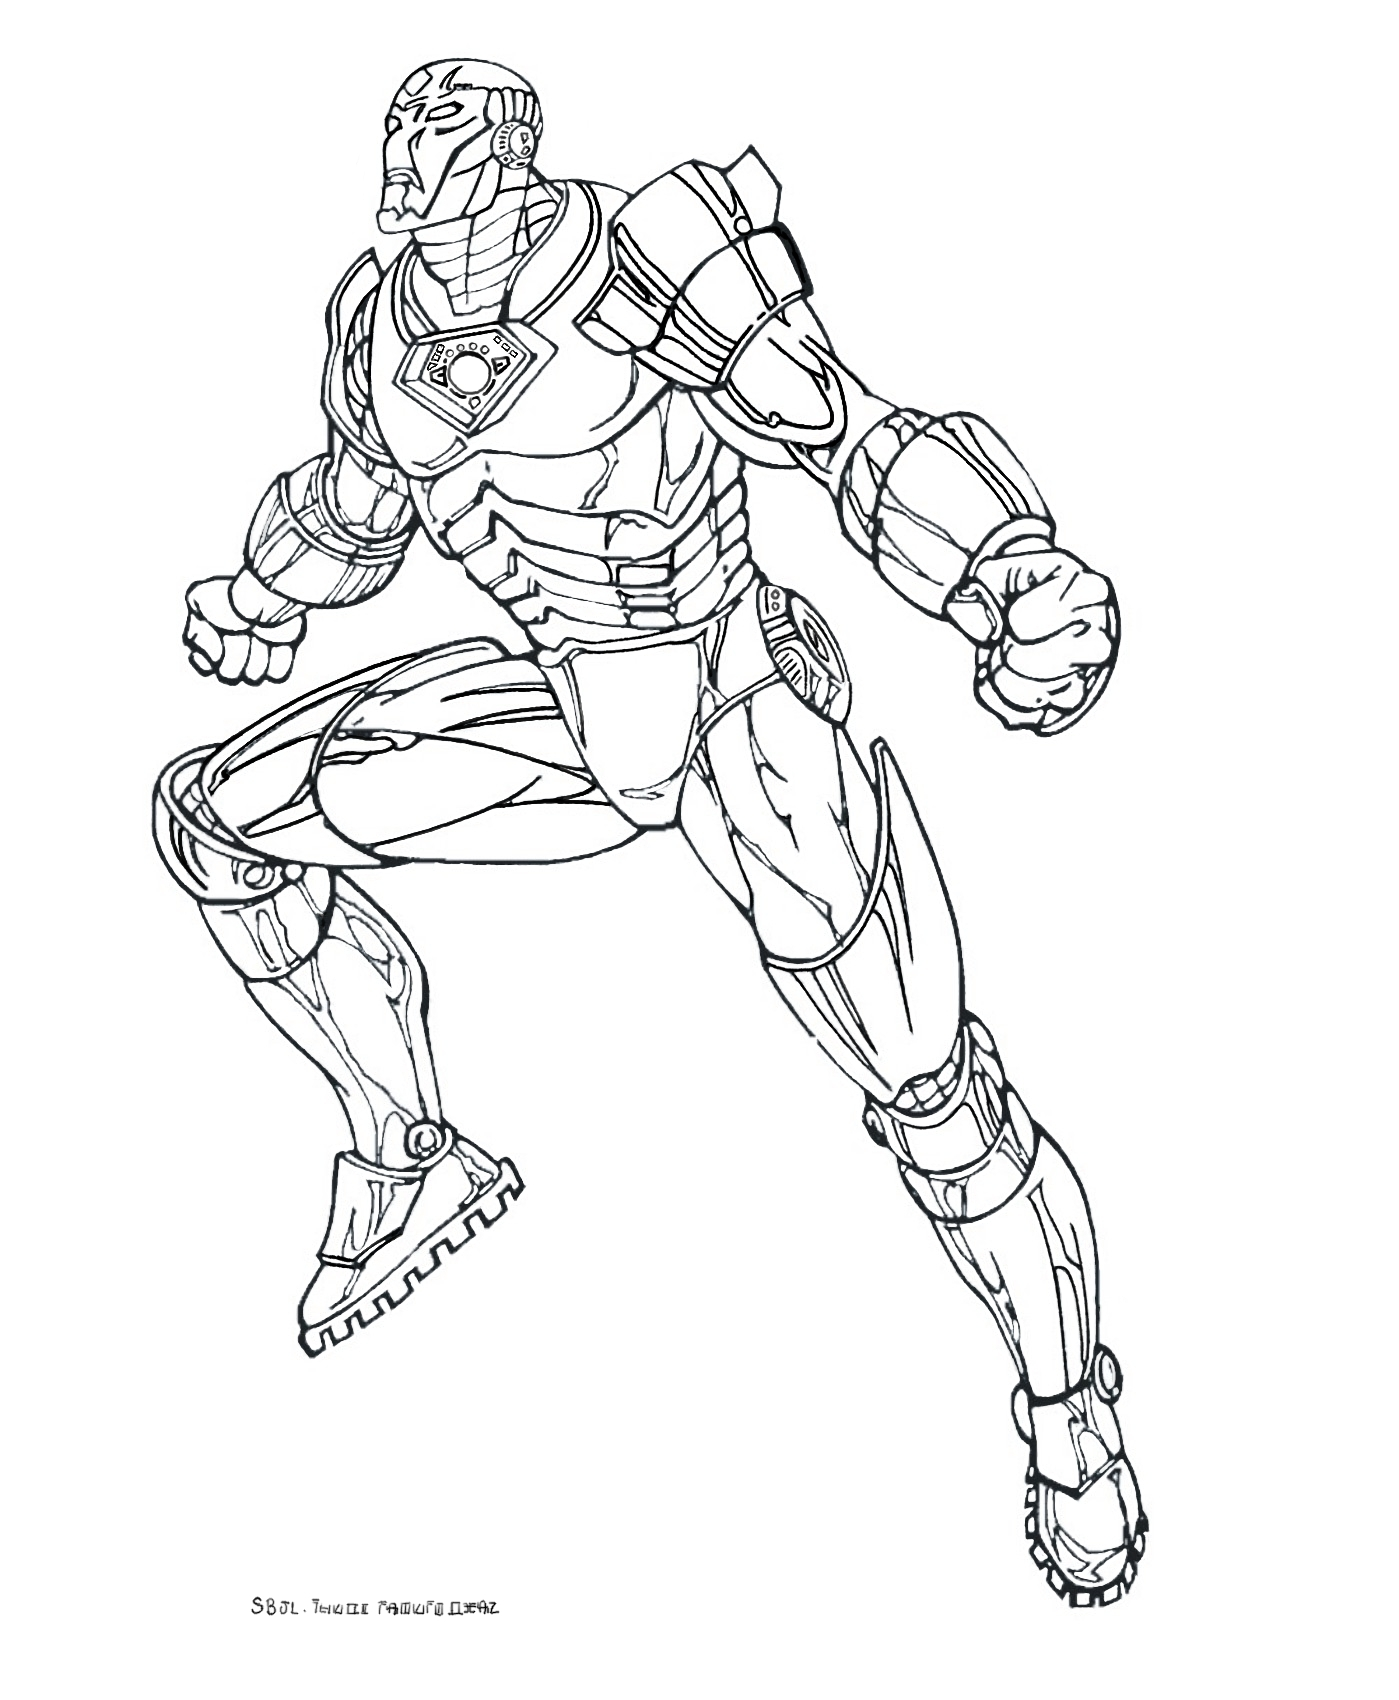 Funny Iron Man coloring page for kids